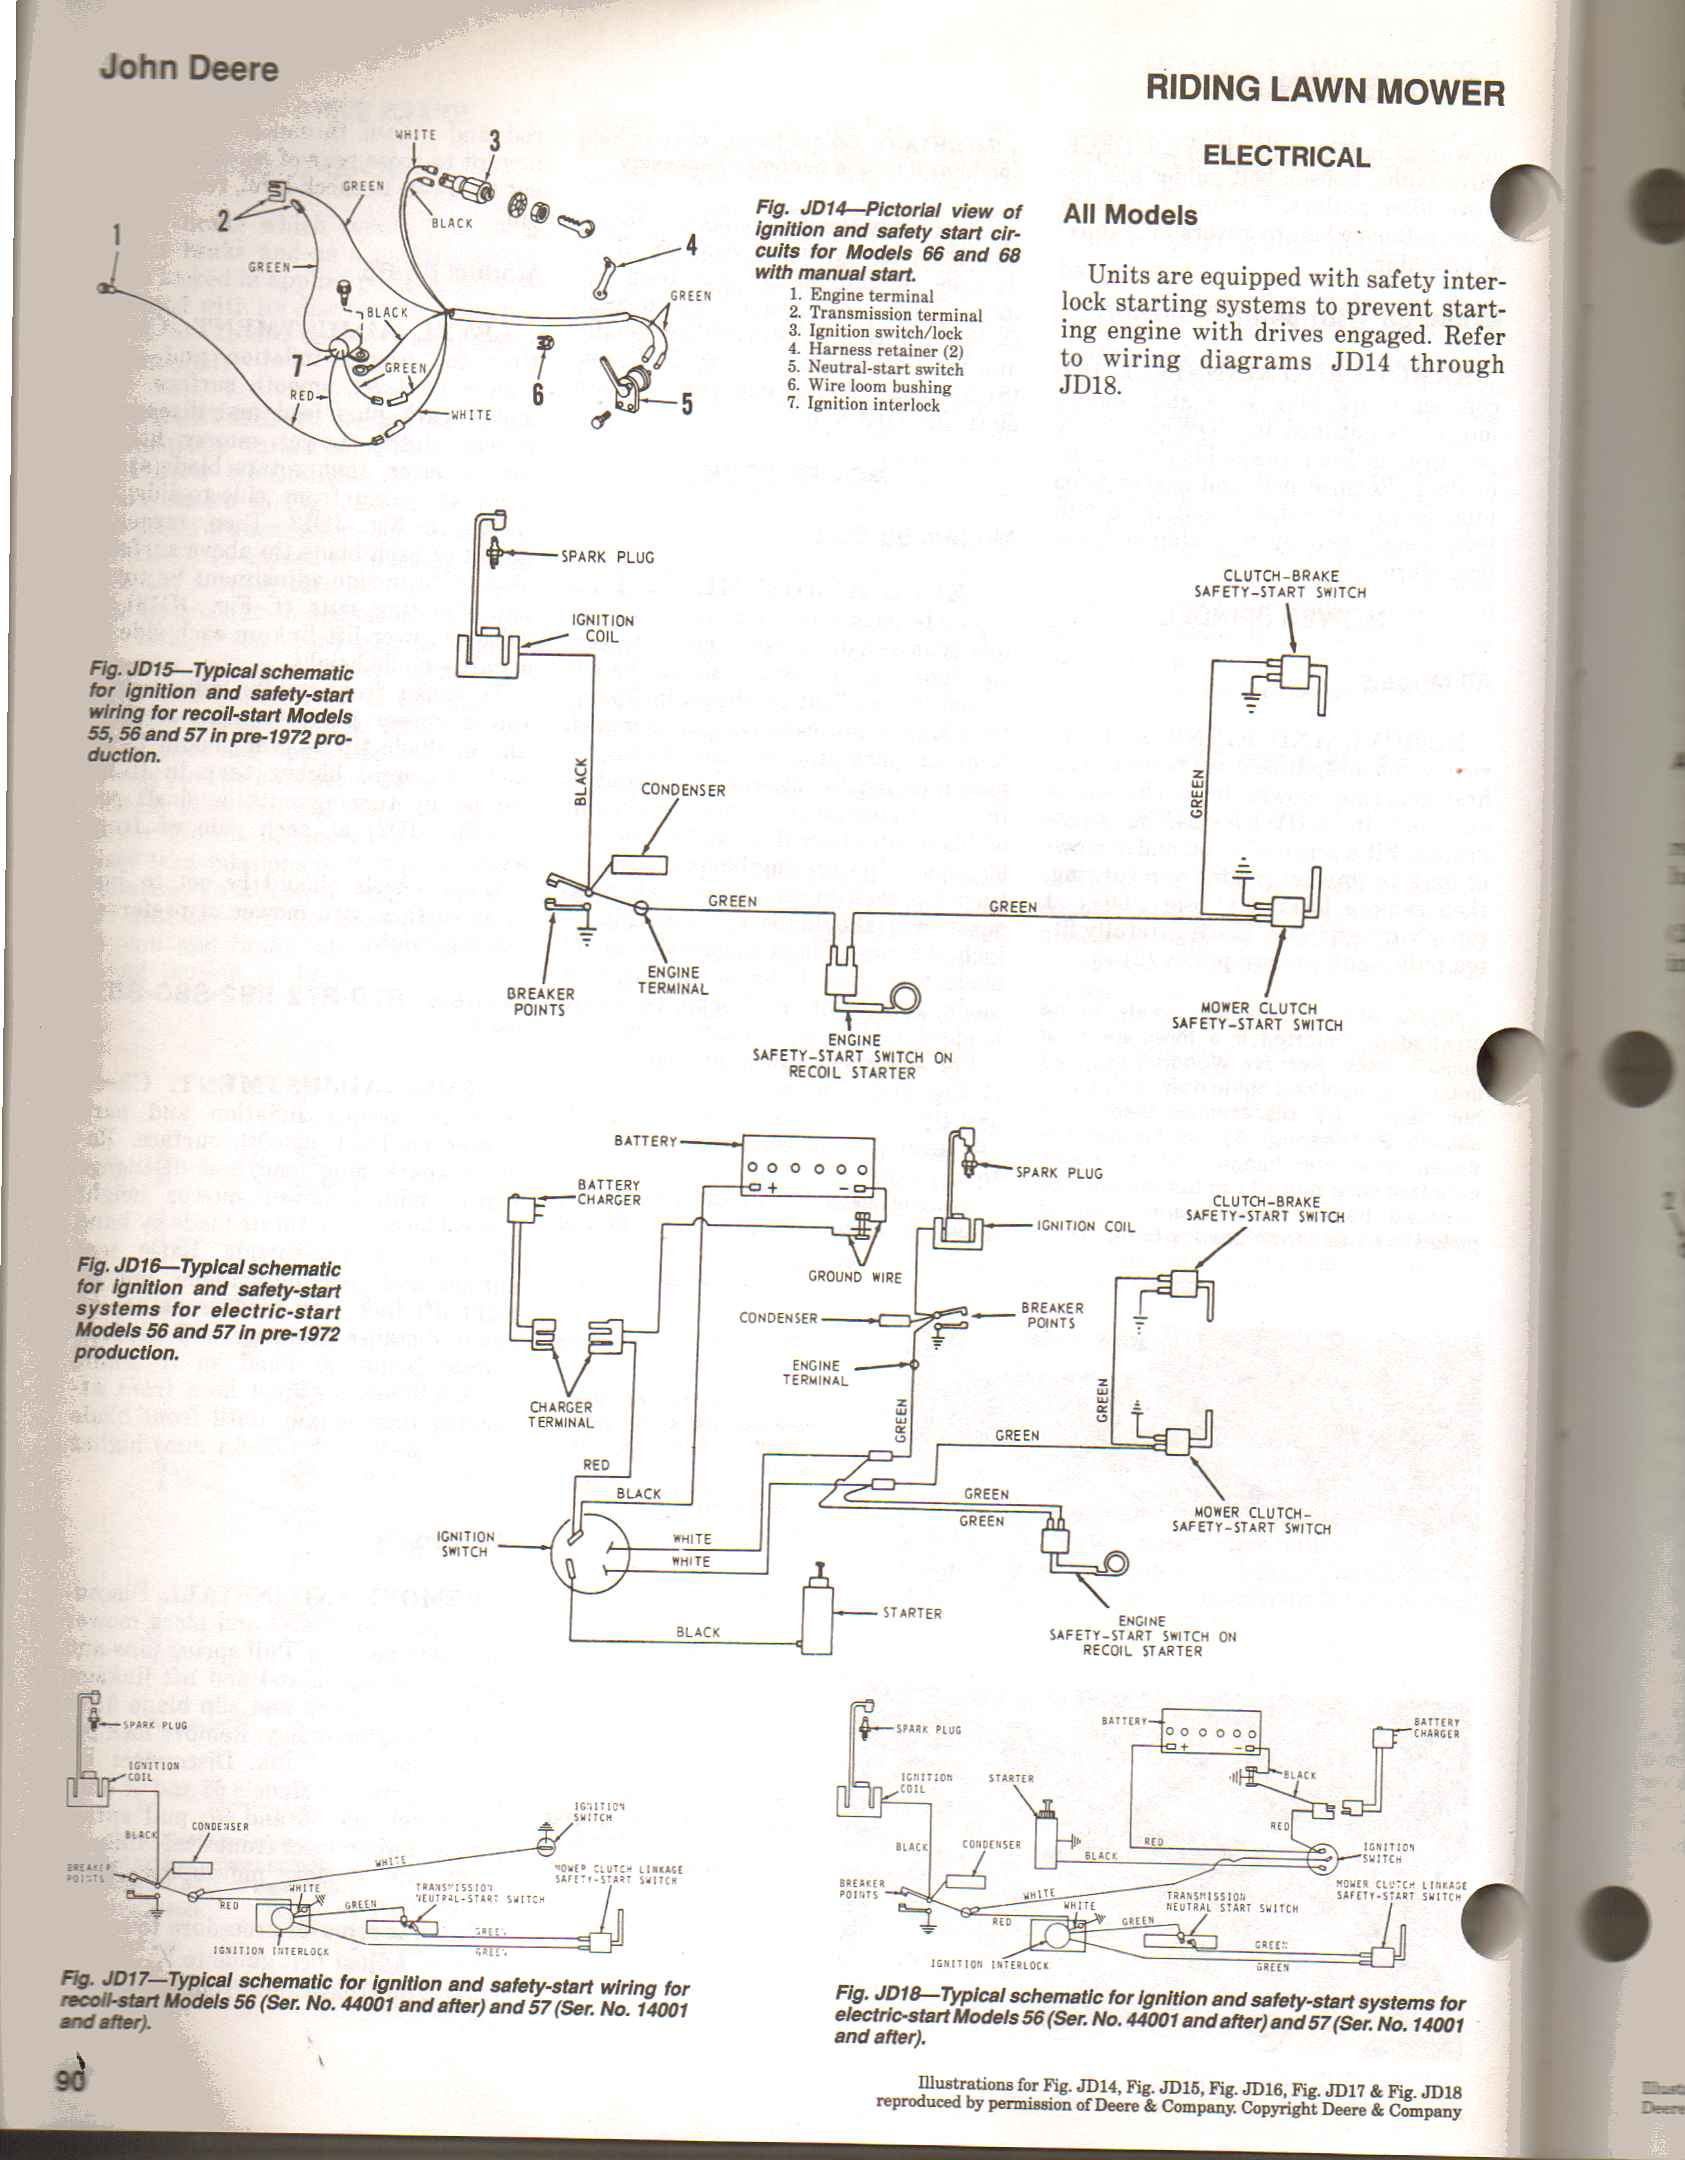 Where Can I Find A Wiring Diagram For A Deere Model 57 1971 Riding Mower